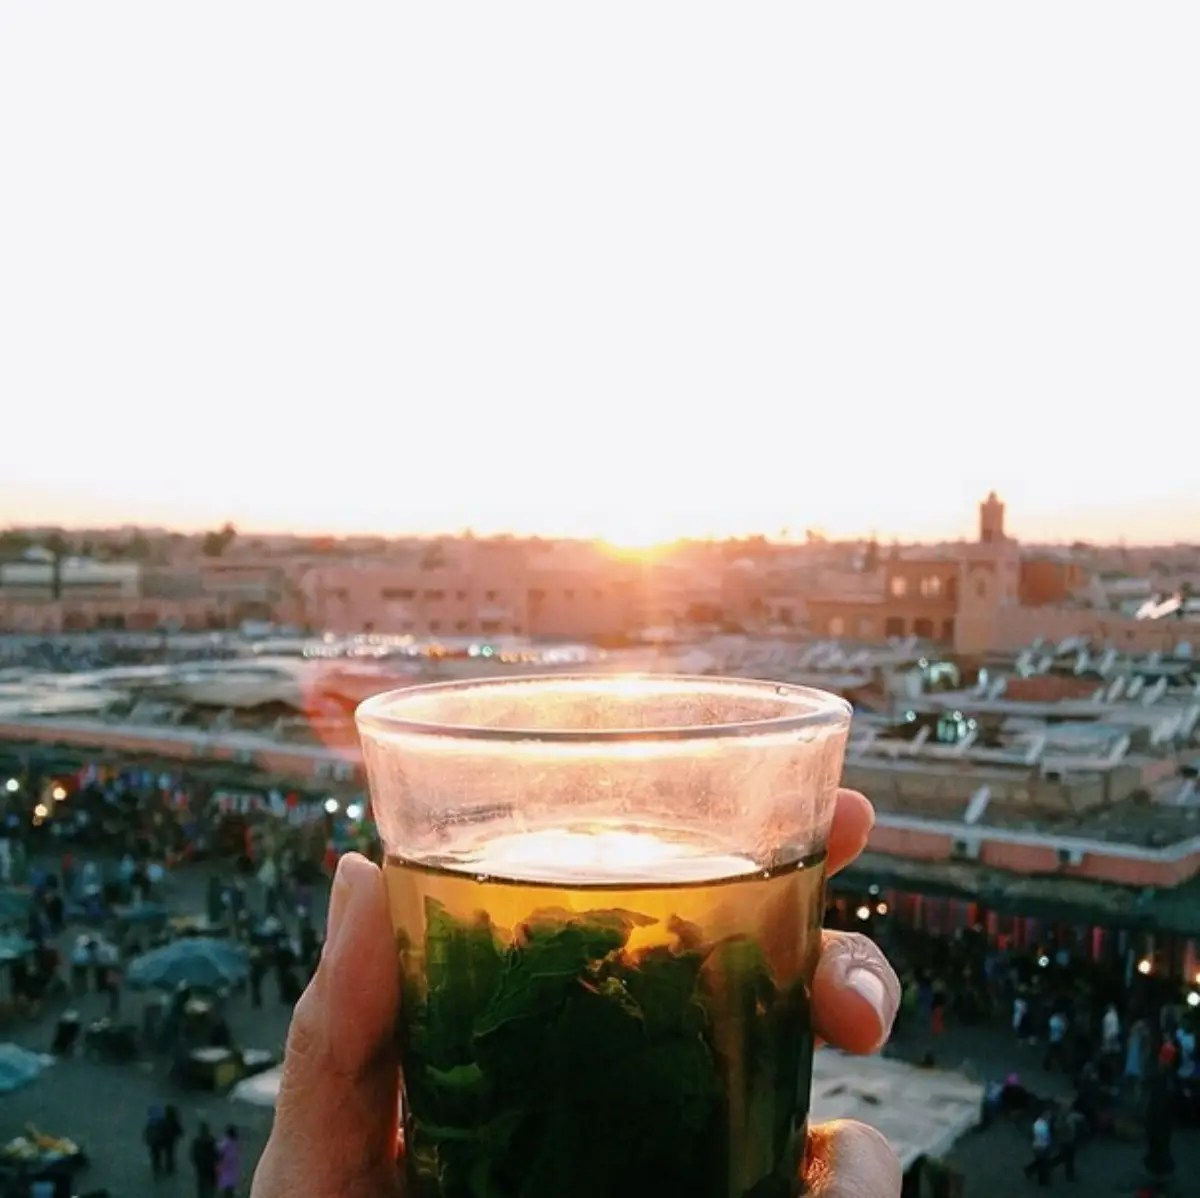 Sunset watch with Thé à la menthe (Mint Tea) at Djema El-Fna in Marrakesh, Morocco.